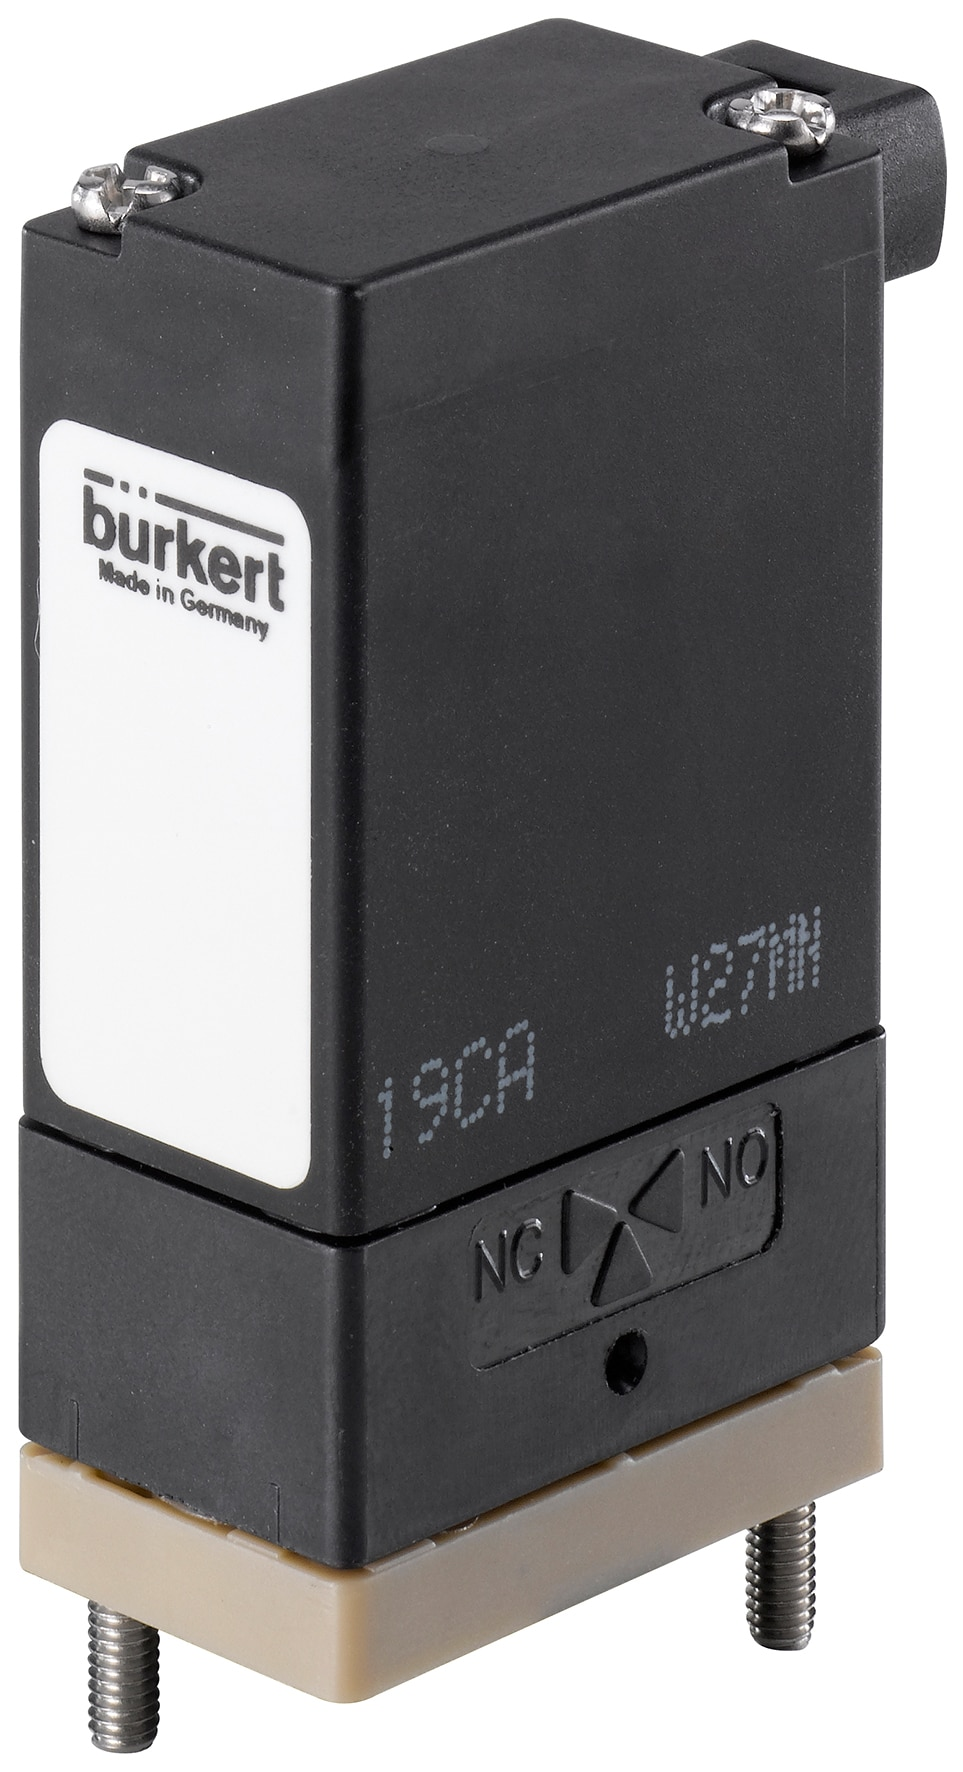 Direct-acting 2/2 or 3/2 way Rocker-Solenoid Valve with separating diaphragm